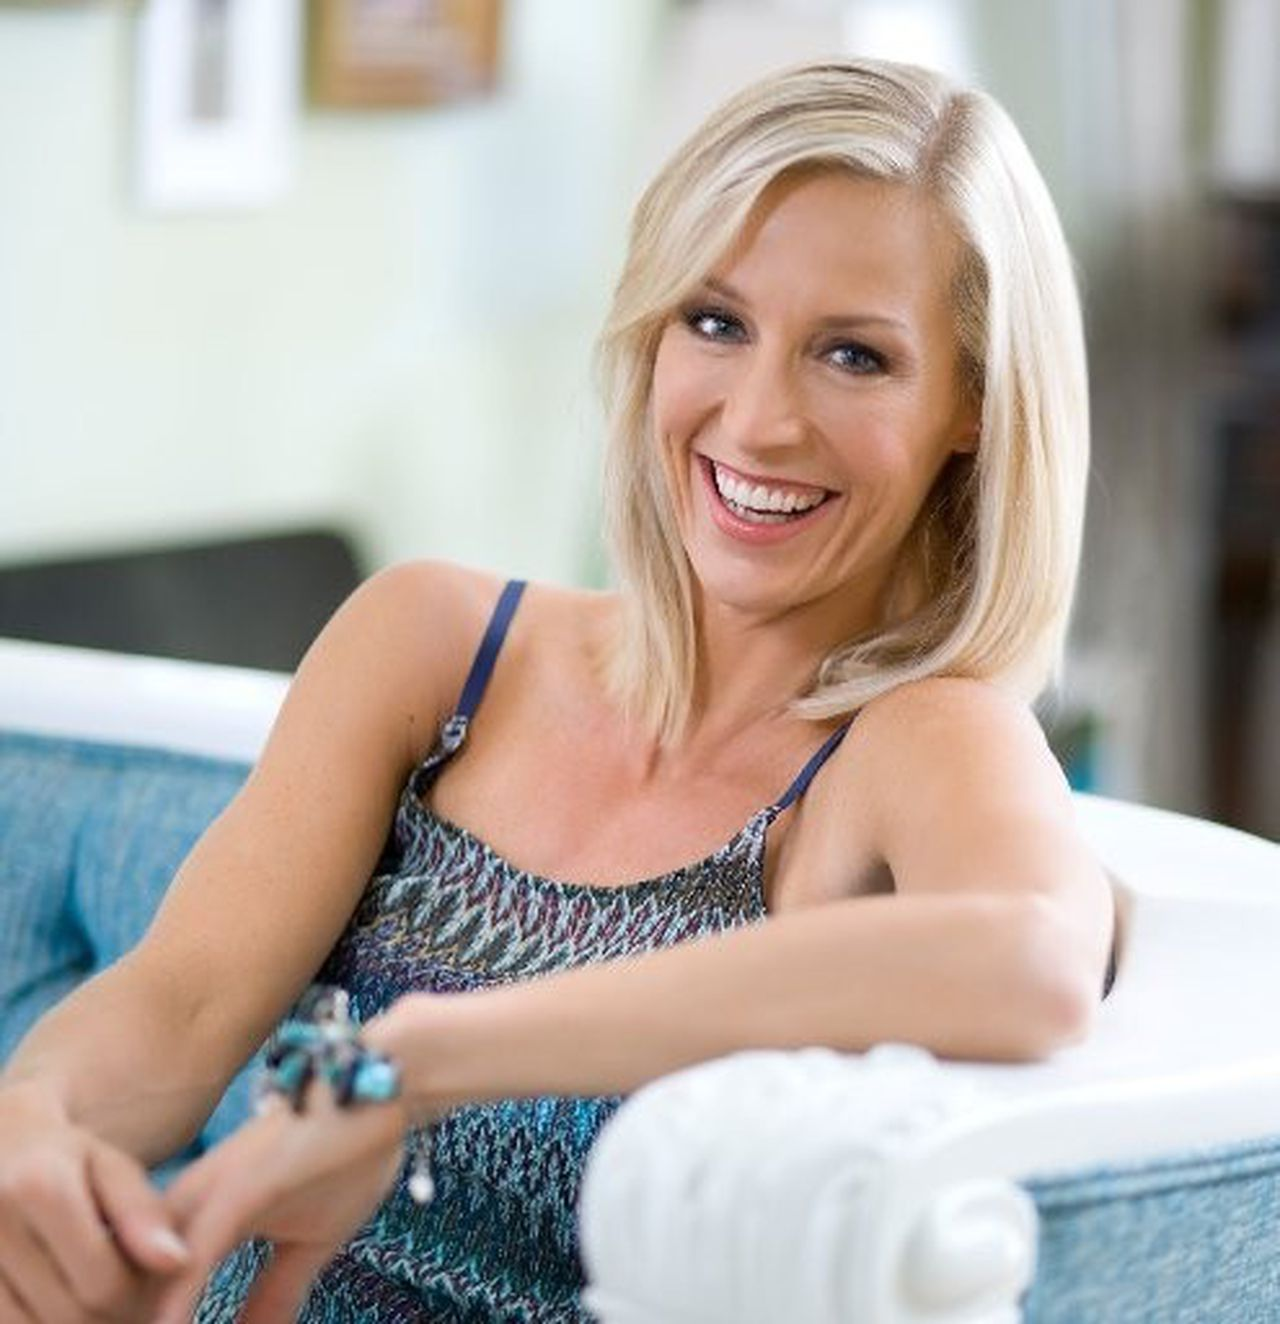 Candice Olson Interview Family Life Design Shows And Her New Kitchens And Bathrooms Book Nj Com